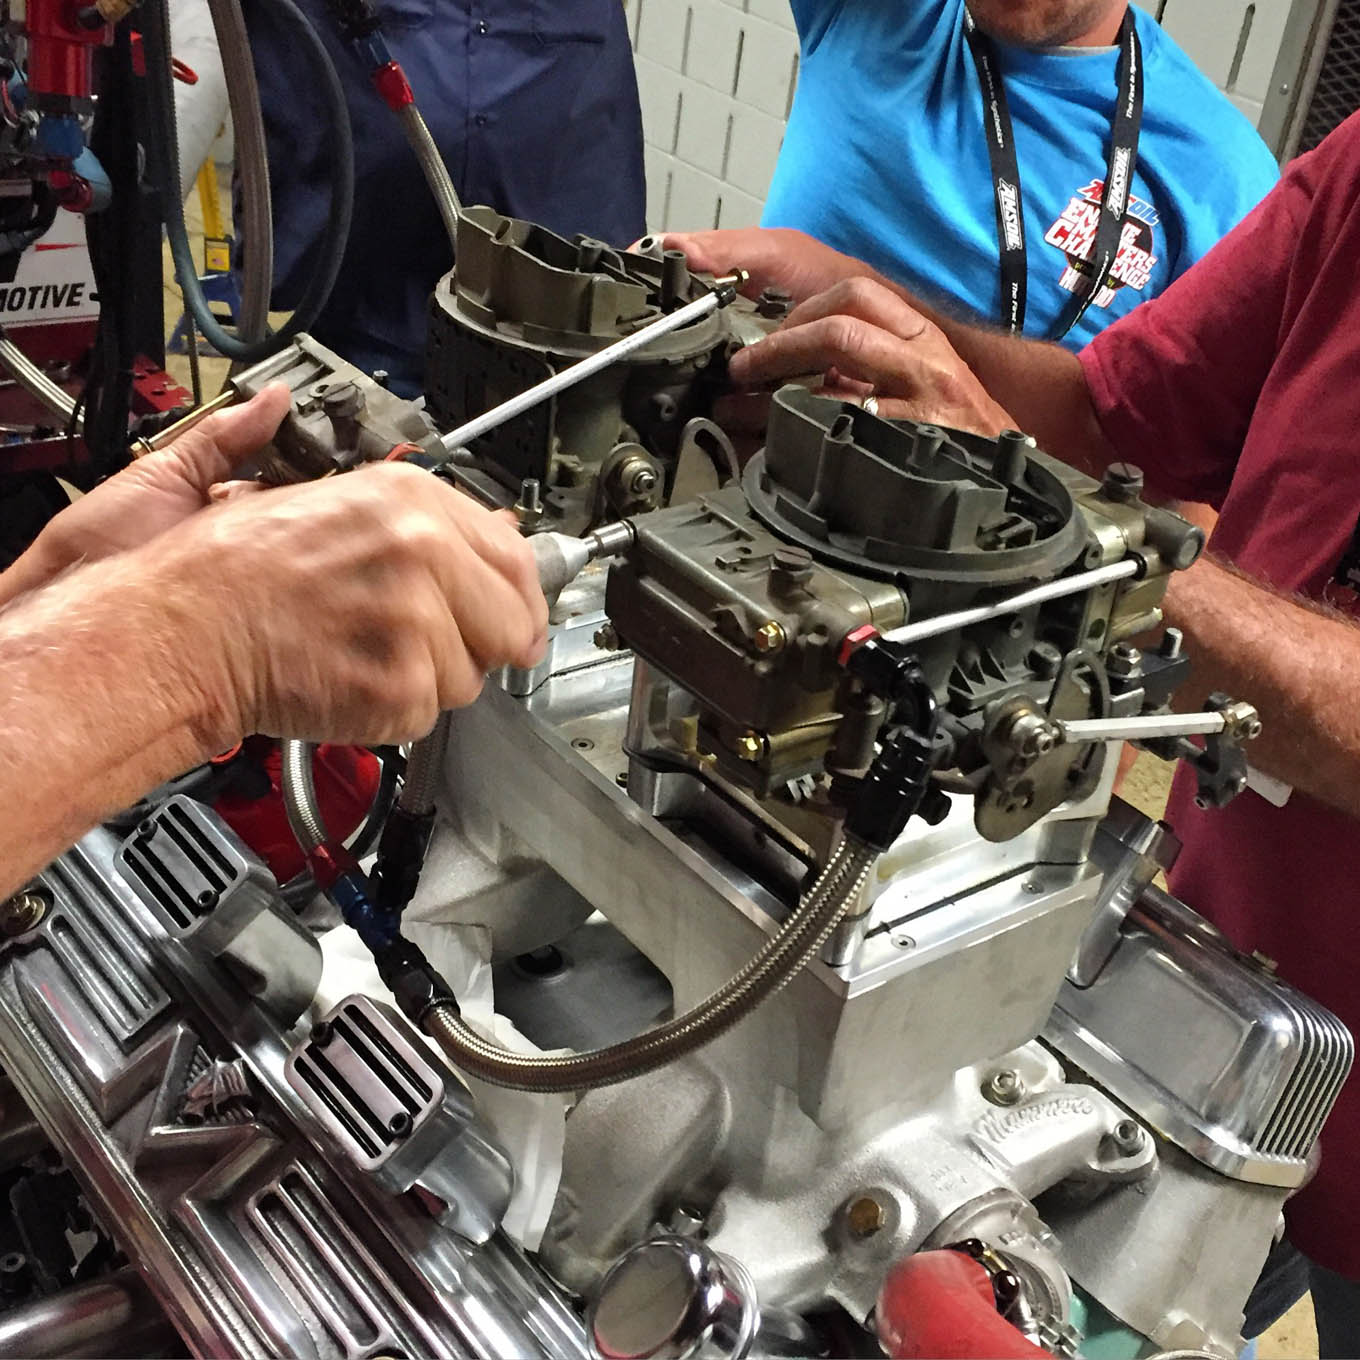 Dual 4-barrel carburetors are great at equalizing airflow to each cylinder, the only downside is that 4 bowls and 8 jets need to come out every time you need to make fueling change. Fortunately, crewmembers Fred Hertzog, Lonnie Putnam, Jody Orsag, and Steve Culp were adept at jet-swaps, accomplishing several in the 30-minute window of competition.